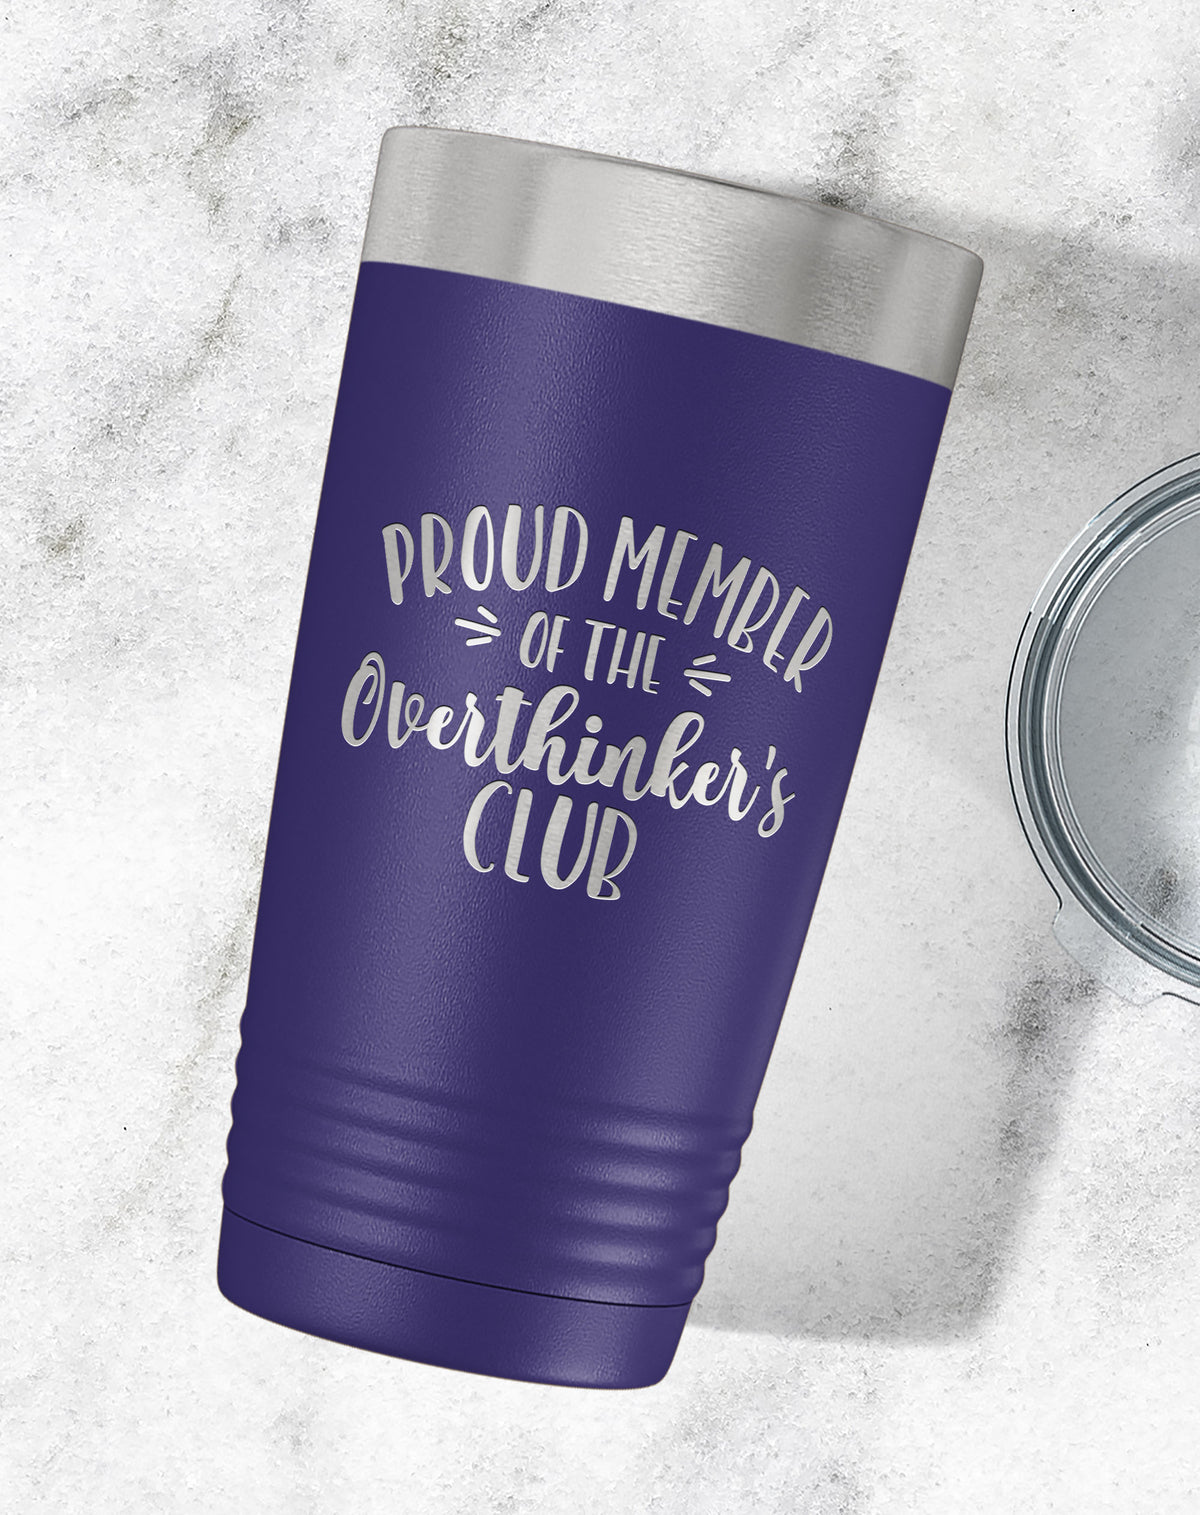 Proud Member Of The Overthinker's Club Engraved Tumbler-Tumblers + Water Bottles-Maddie & Co.